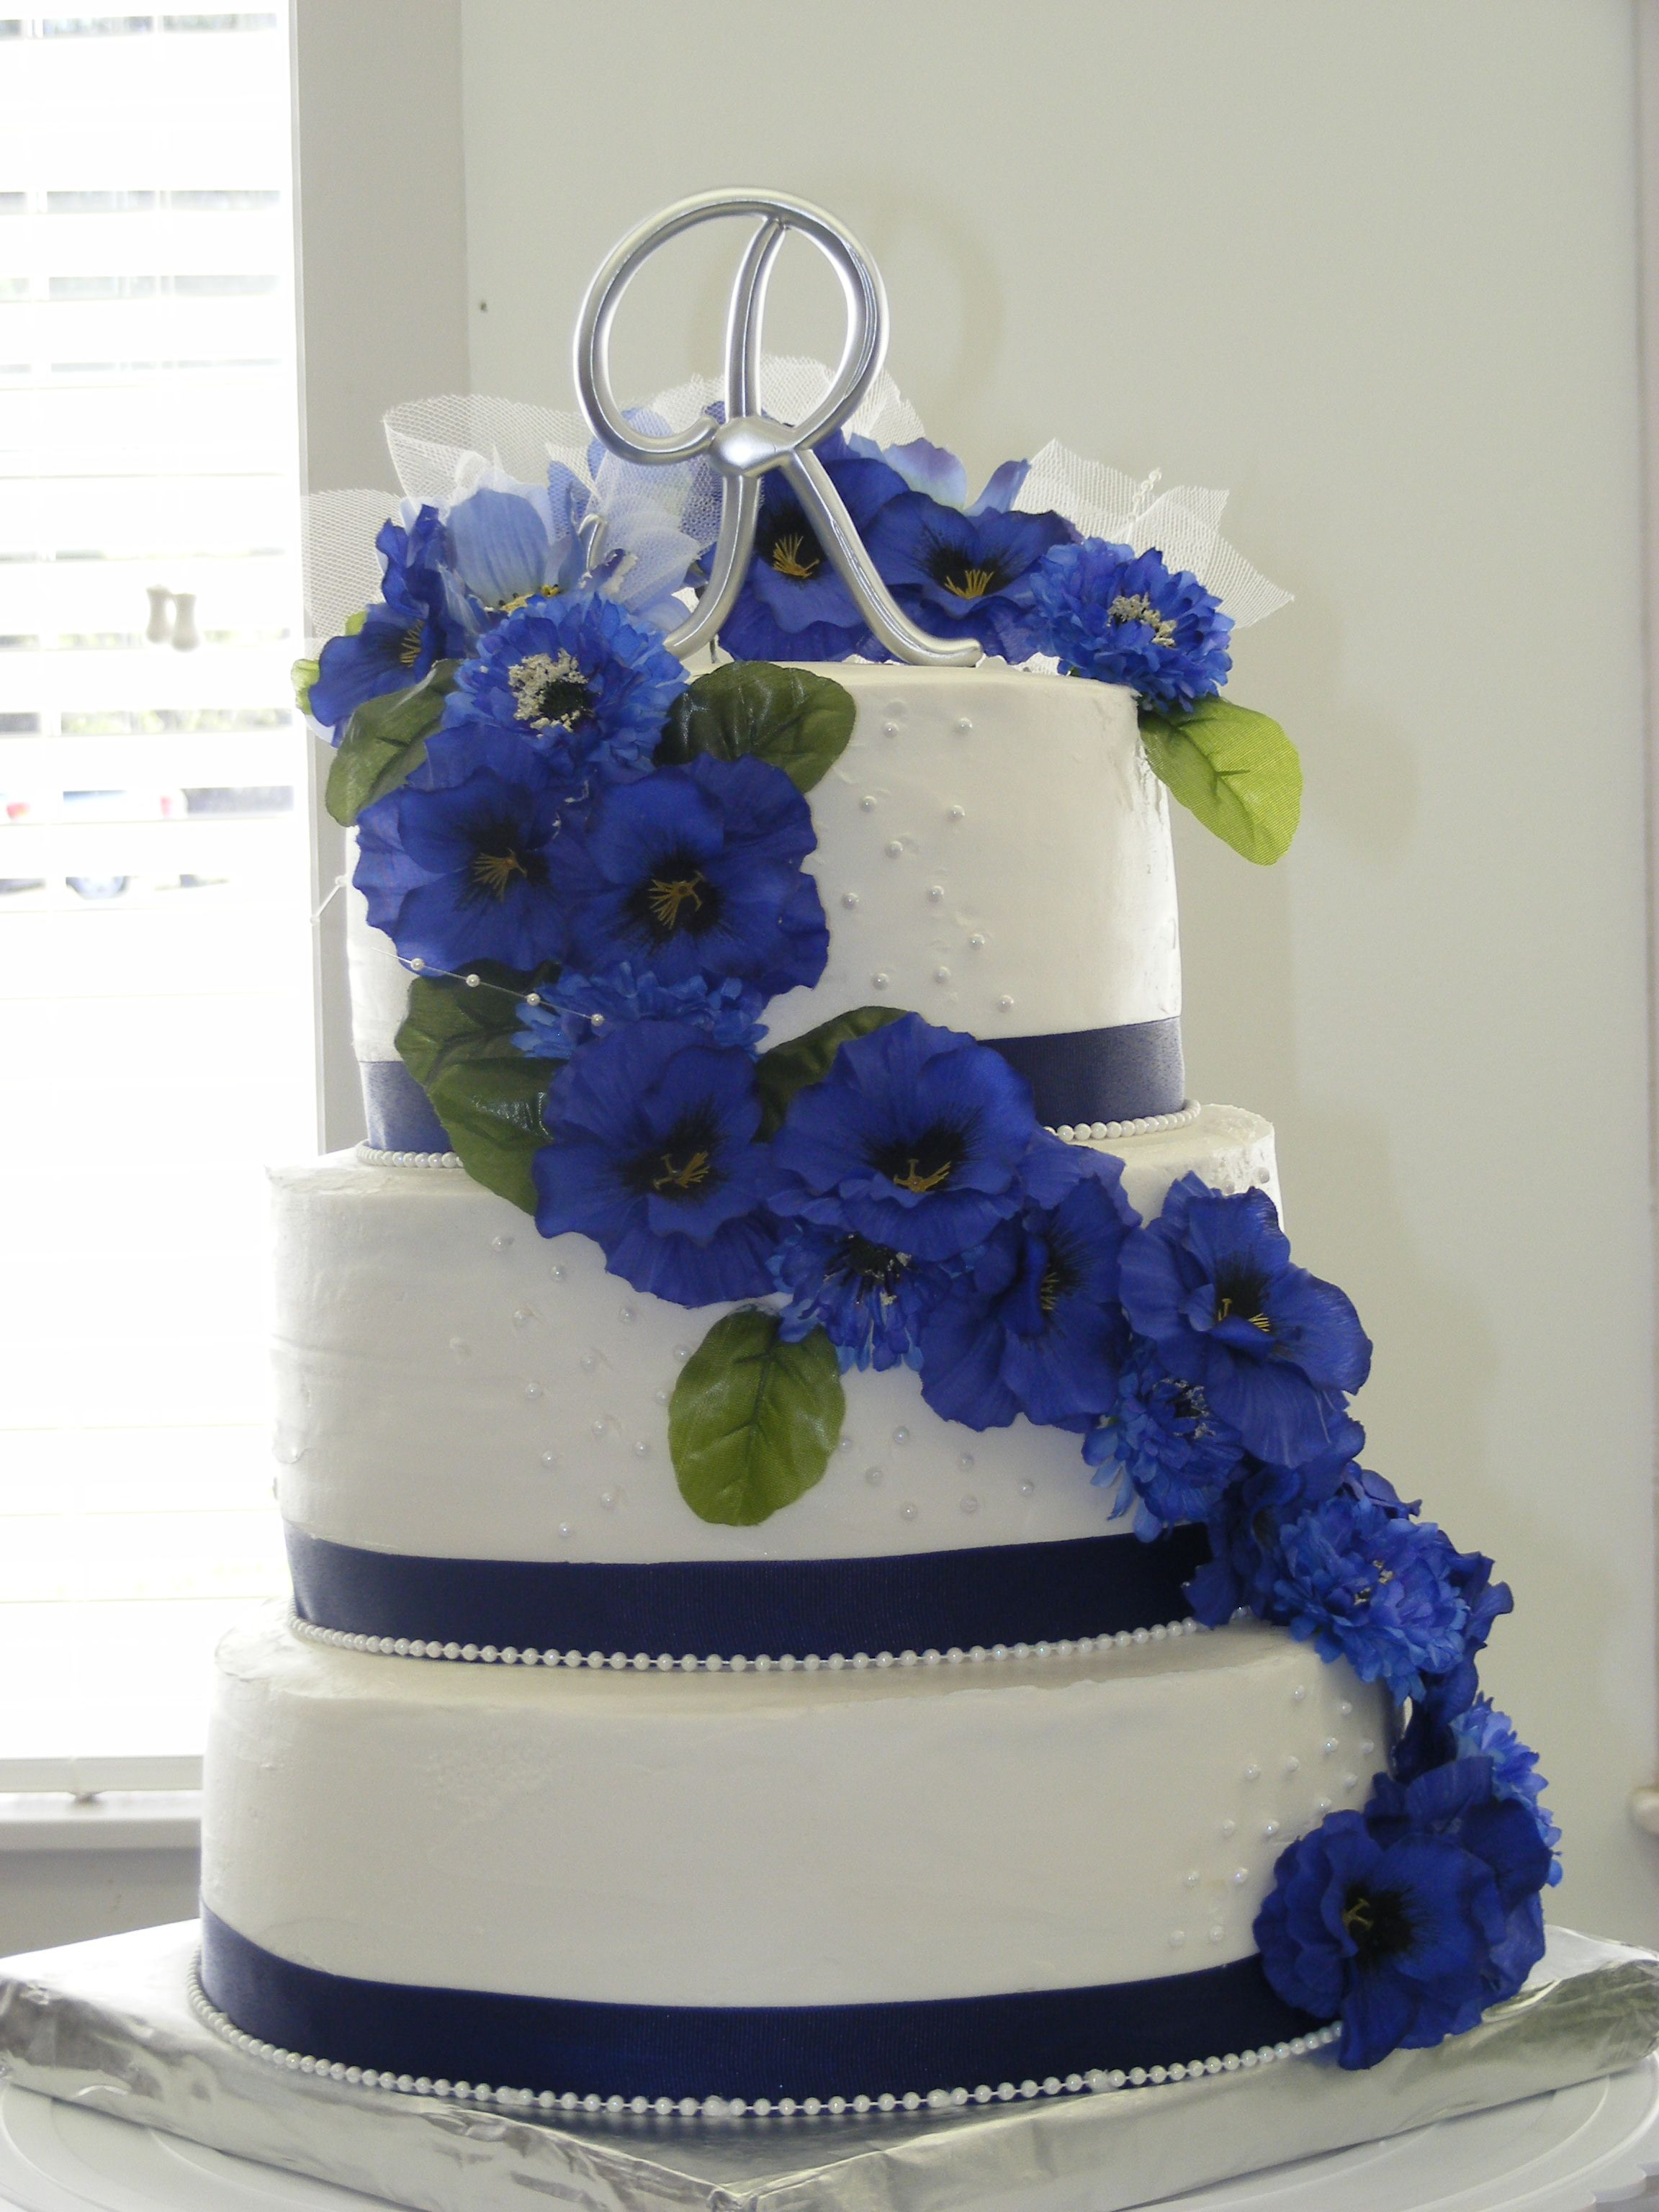 White wedding cake with blue flowers and fountain gteau white wedding cake with blue flowers and fountain izmirmasajfo